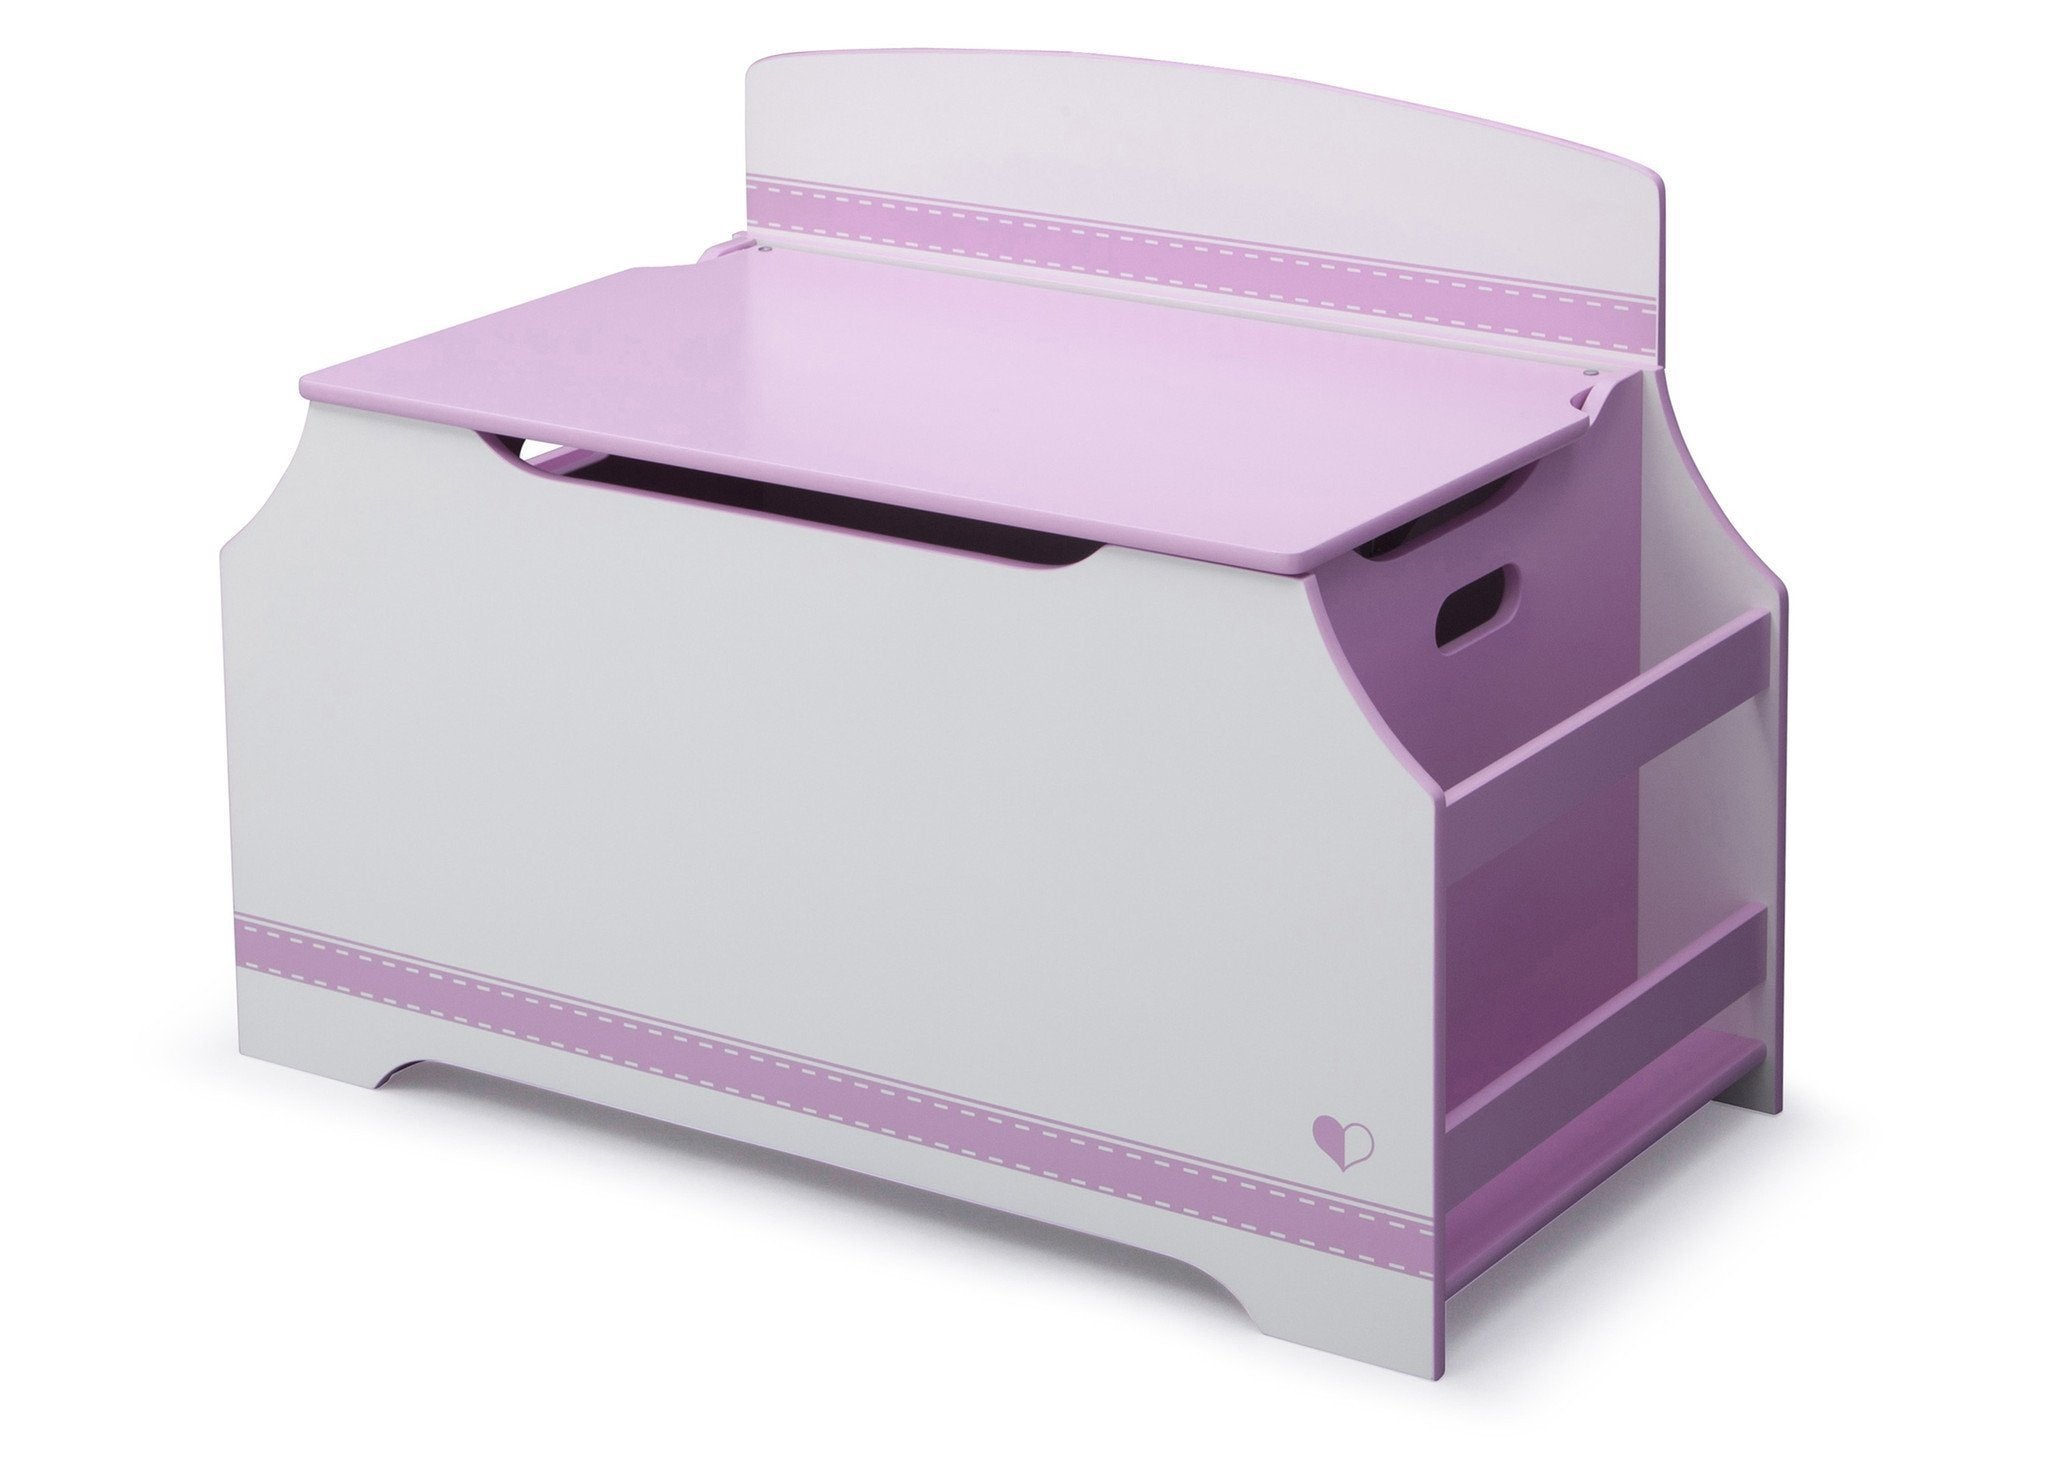 Carnival Toy Box Pink: Jack And Jill Deluxe Toy Box With Book Rack, Pink And